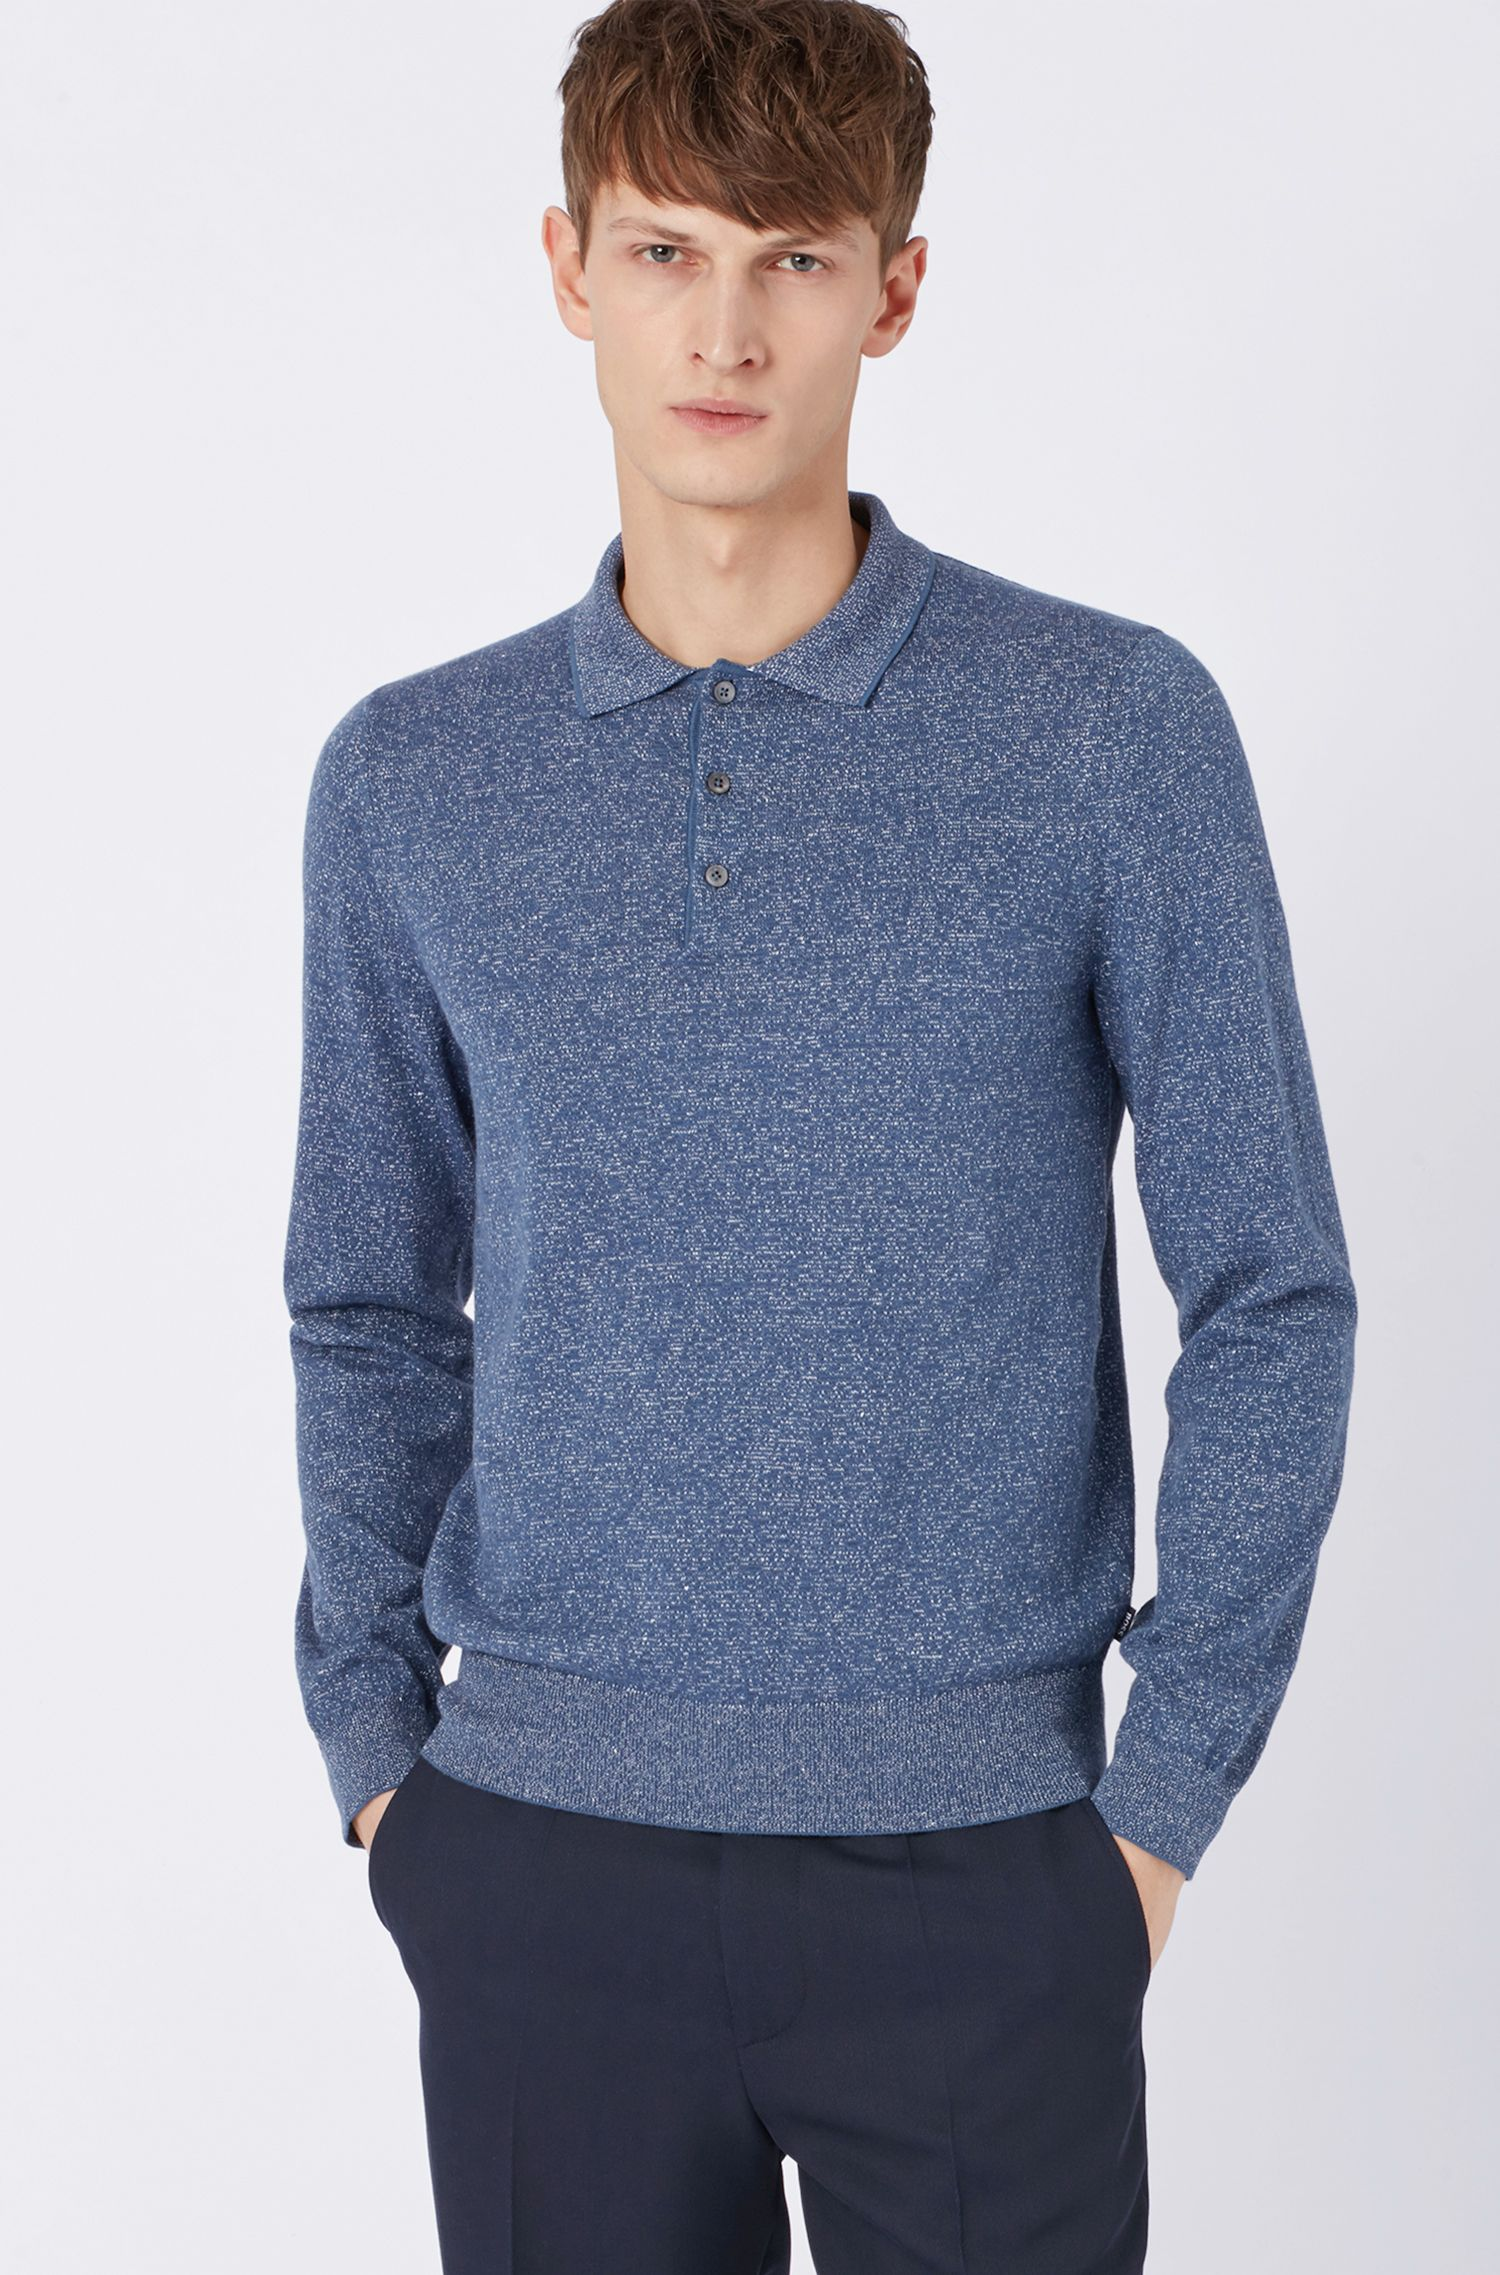 Slim-fit knitted sweater in a cotton-linen blend, Blue